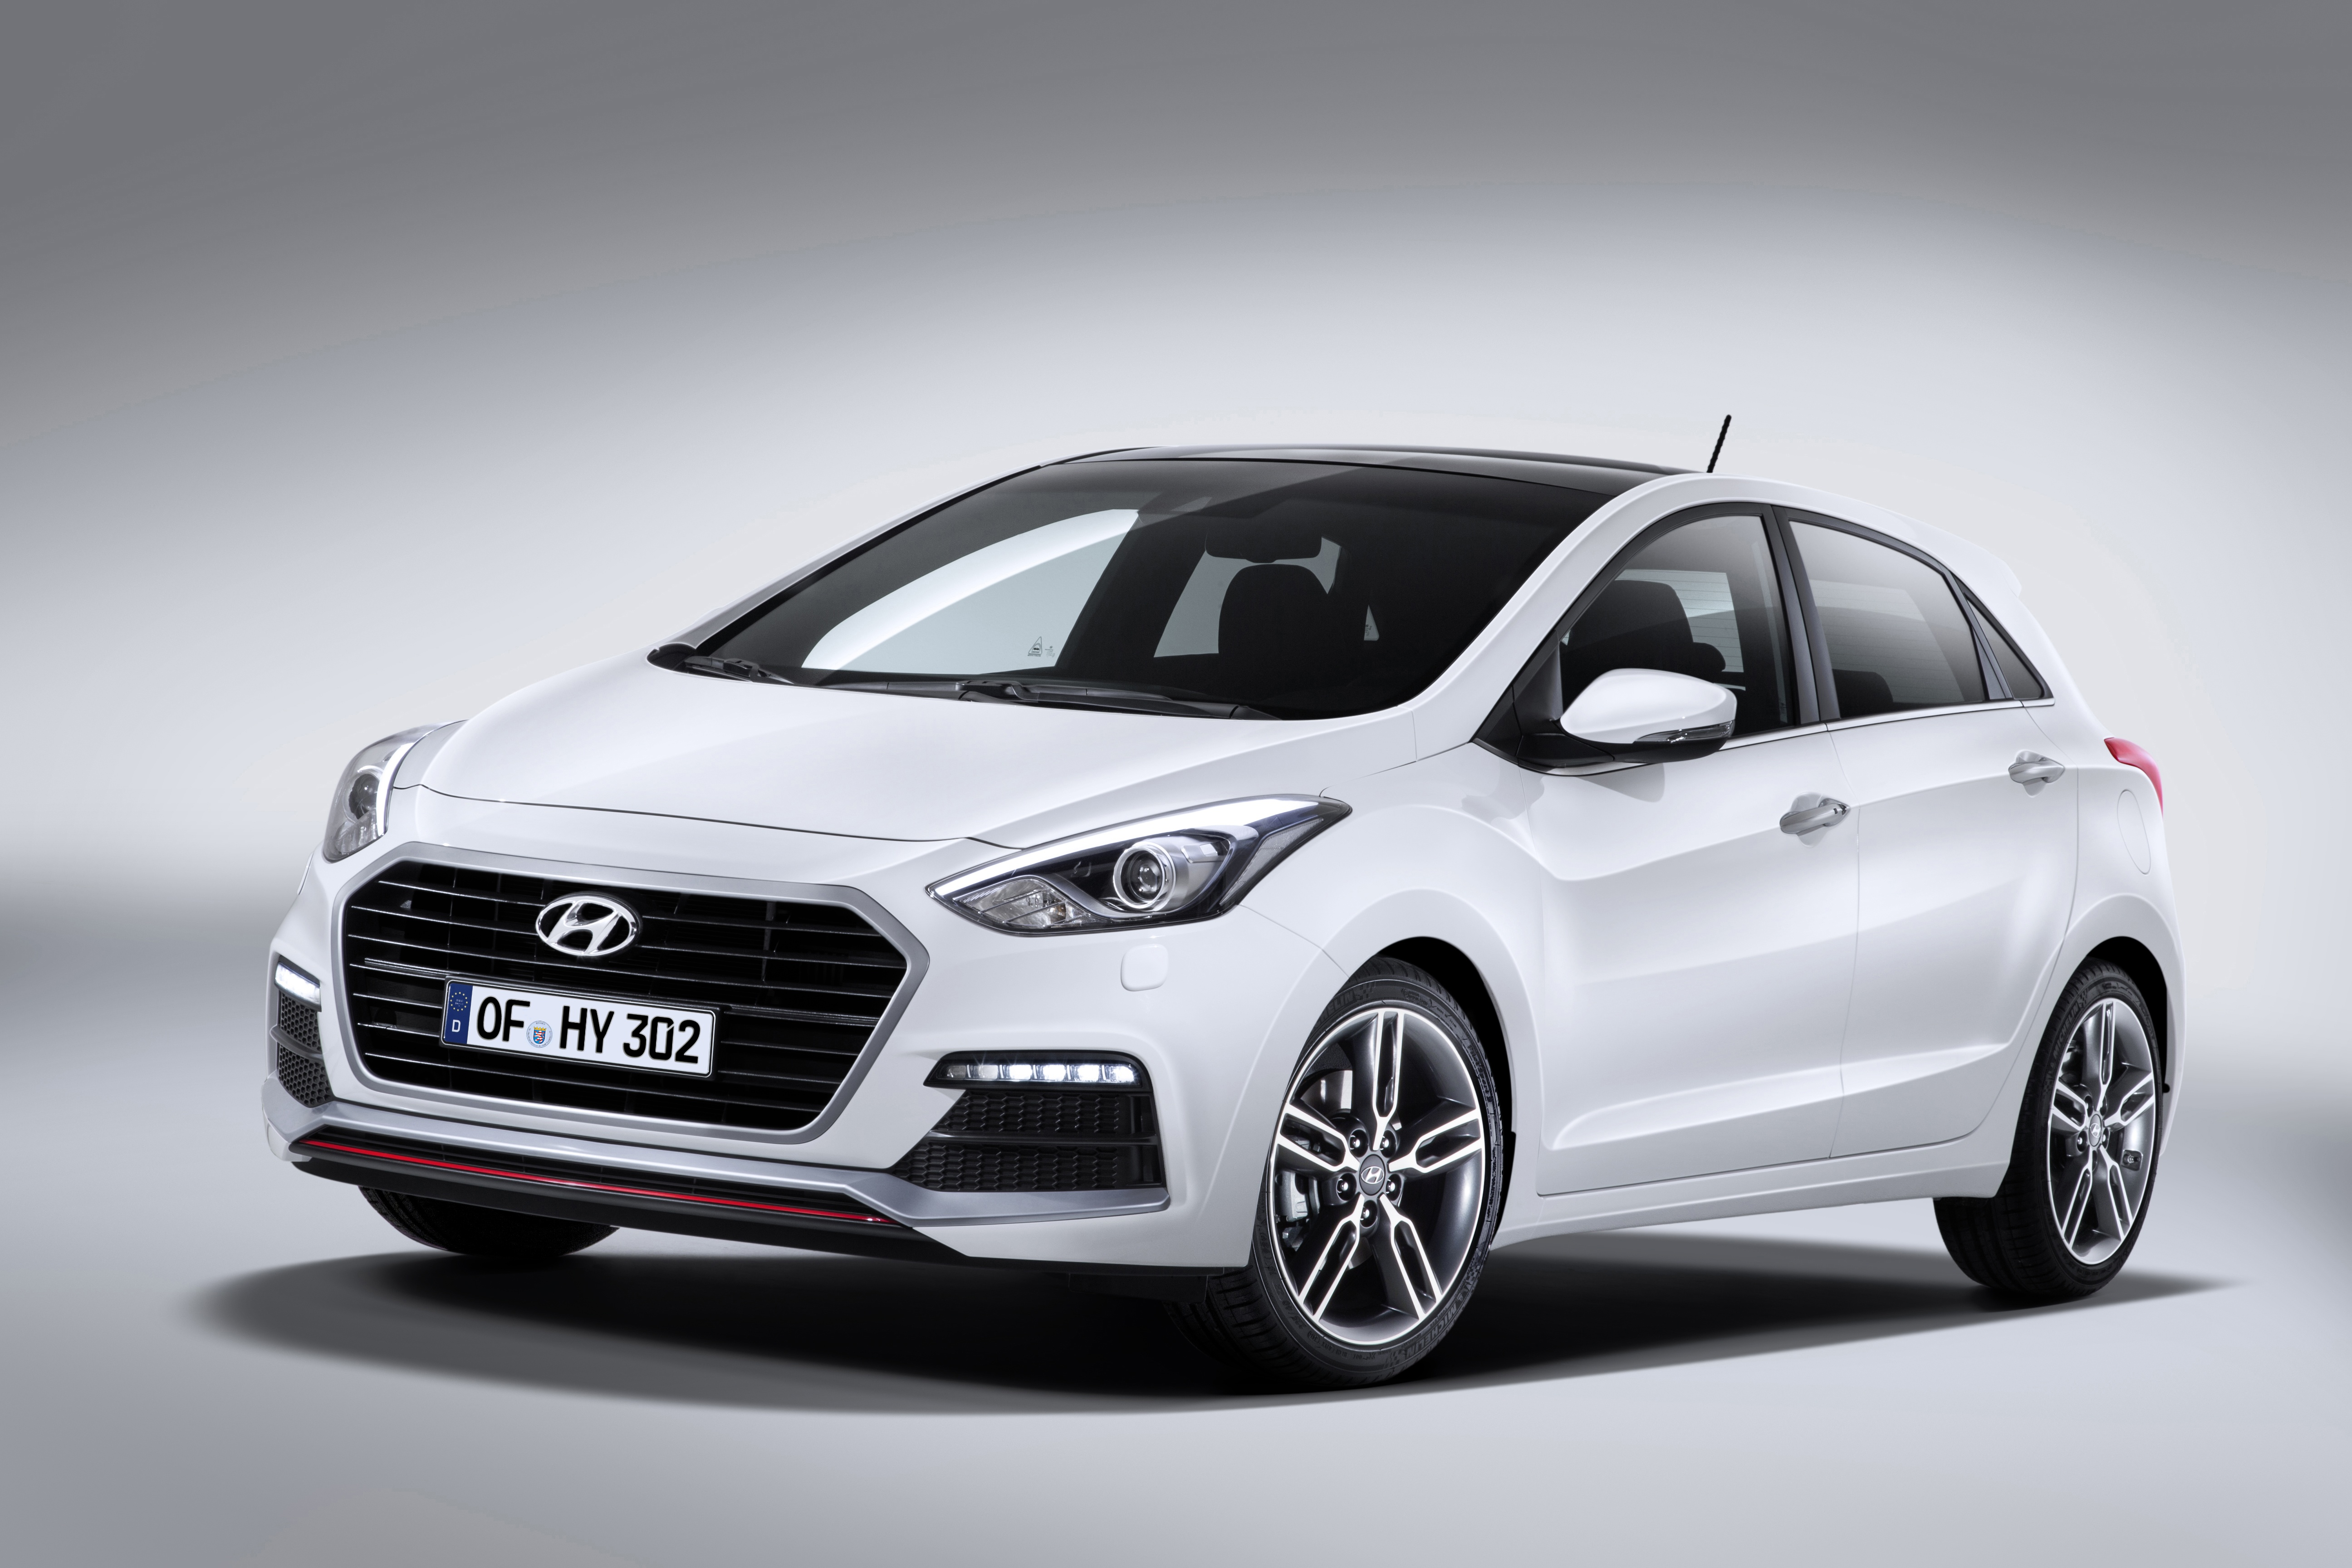 Hyundai Launched i30 Turbo Hot Hatch Delivering 186 hp